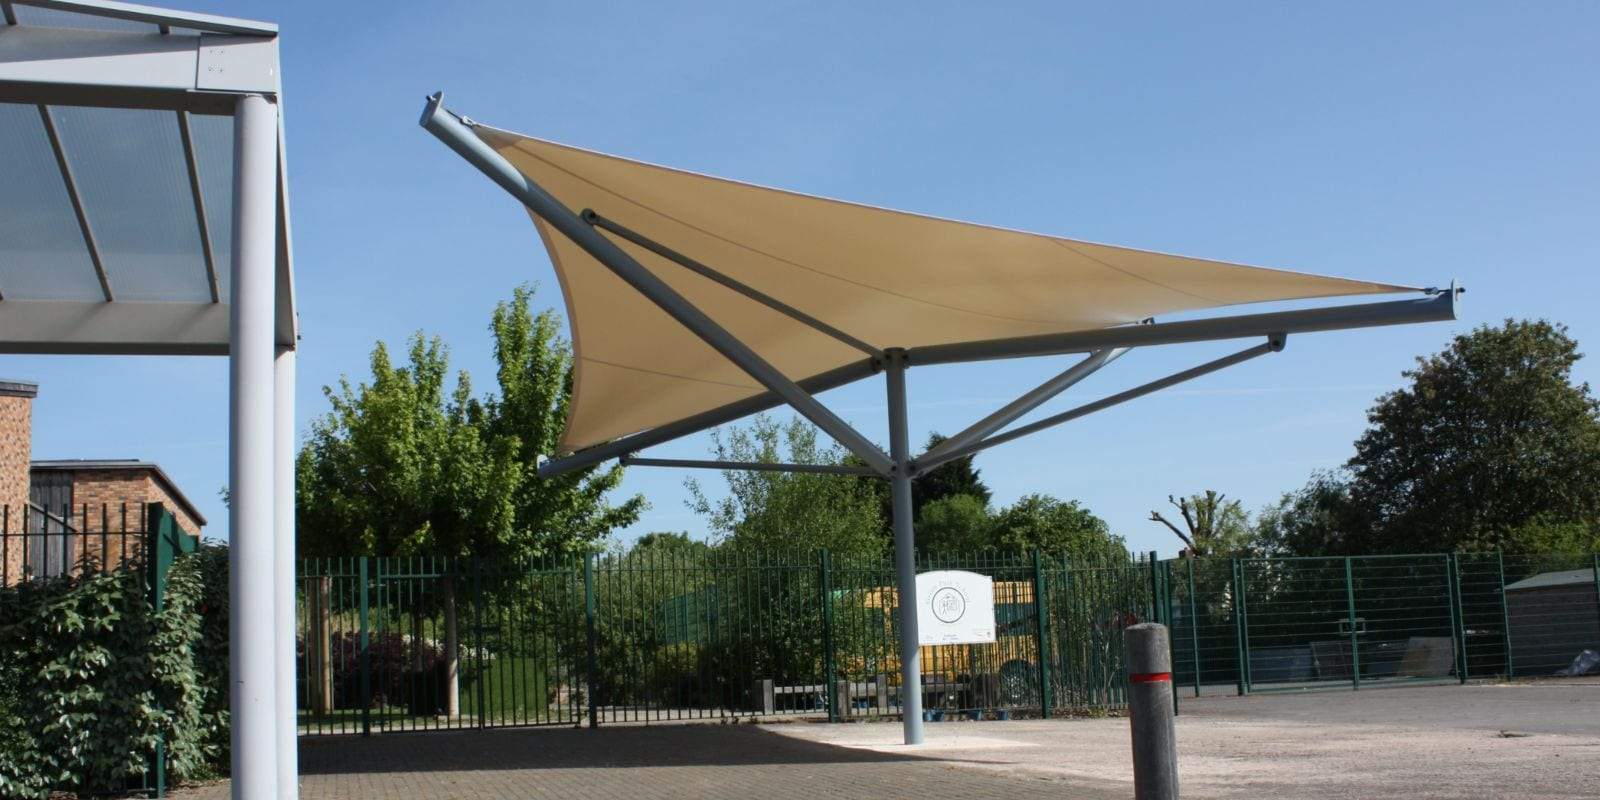 Fabric shelter we manufactured for Green Park Primary School